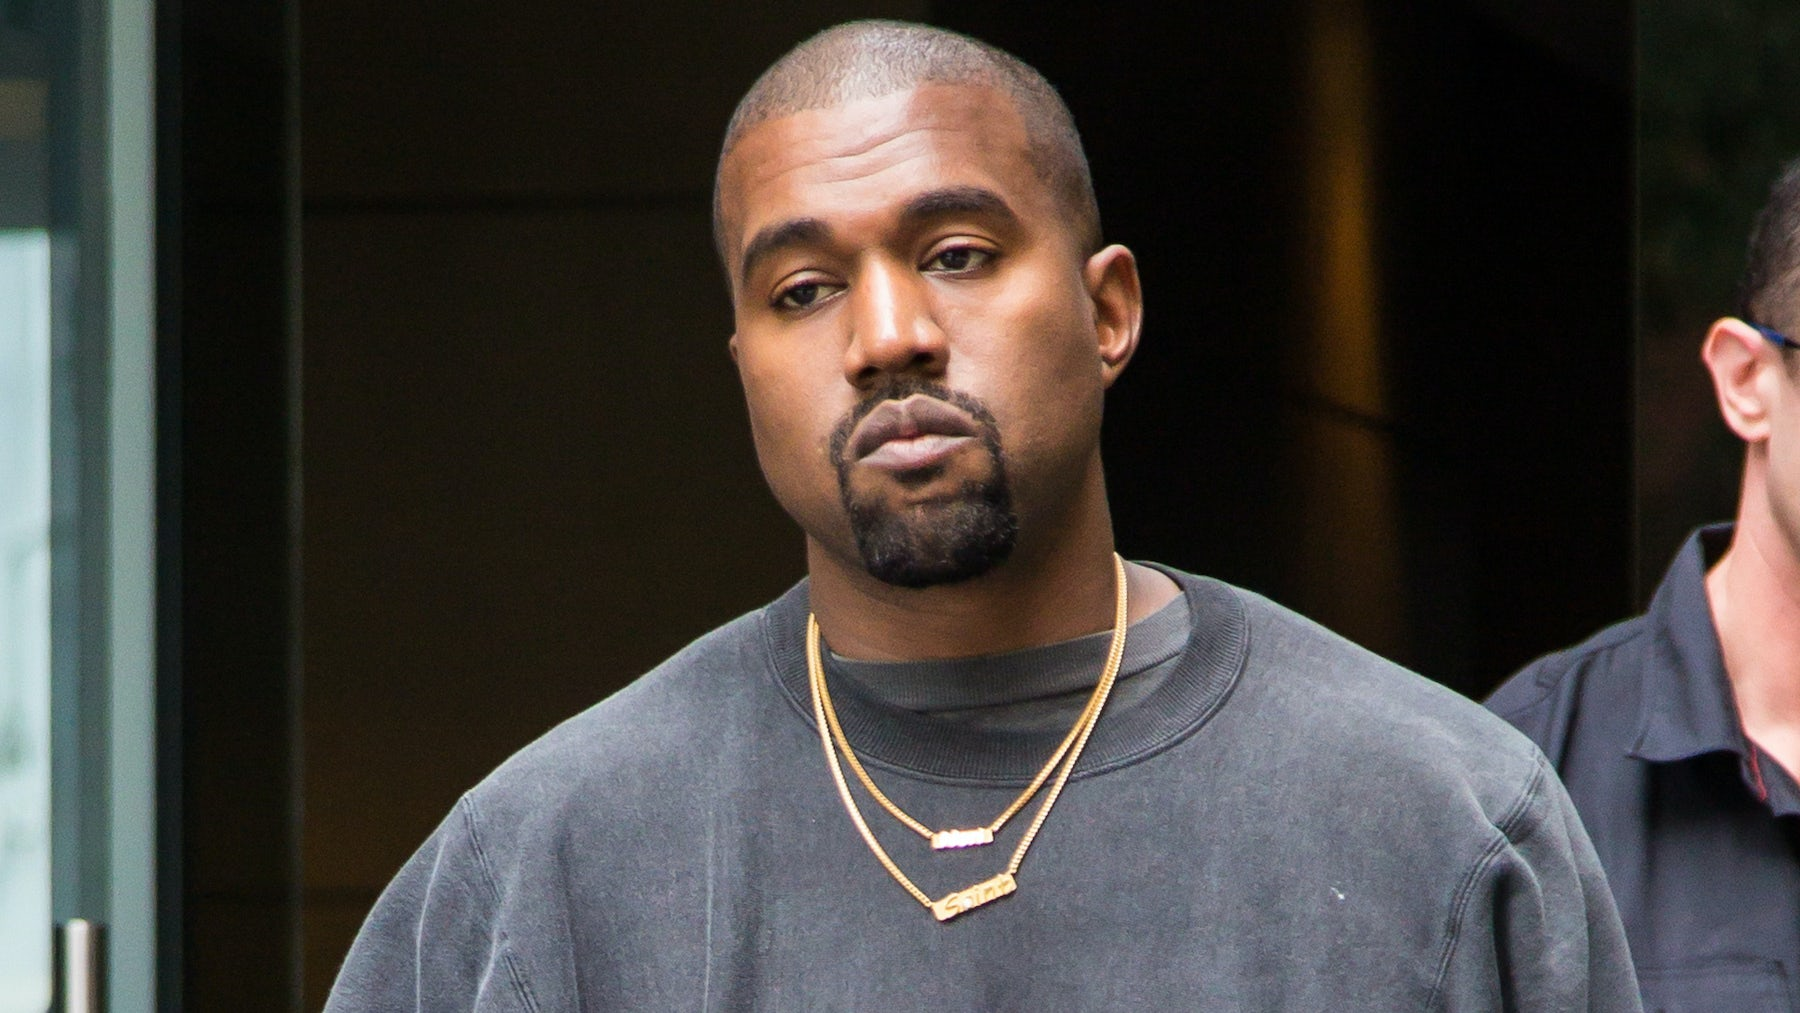 Social Goods | Adidas Under Pressure to Drop Kanye West, Nike CEO Apologises for Workplace Culture